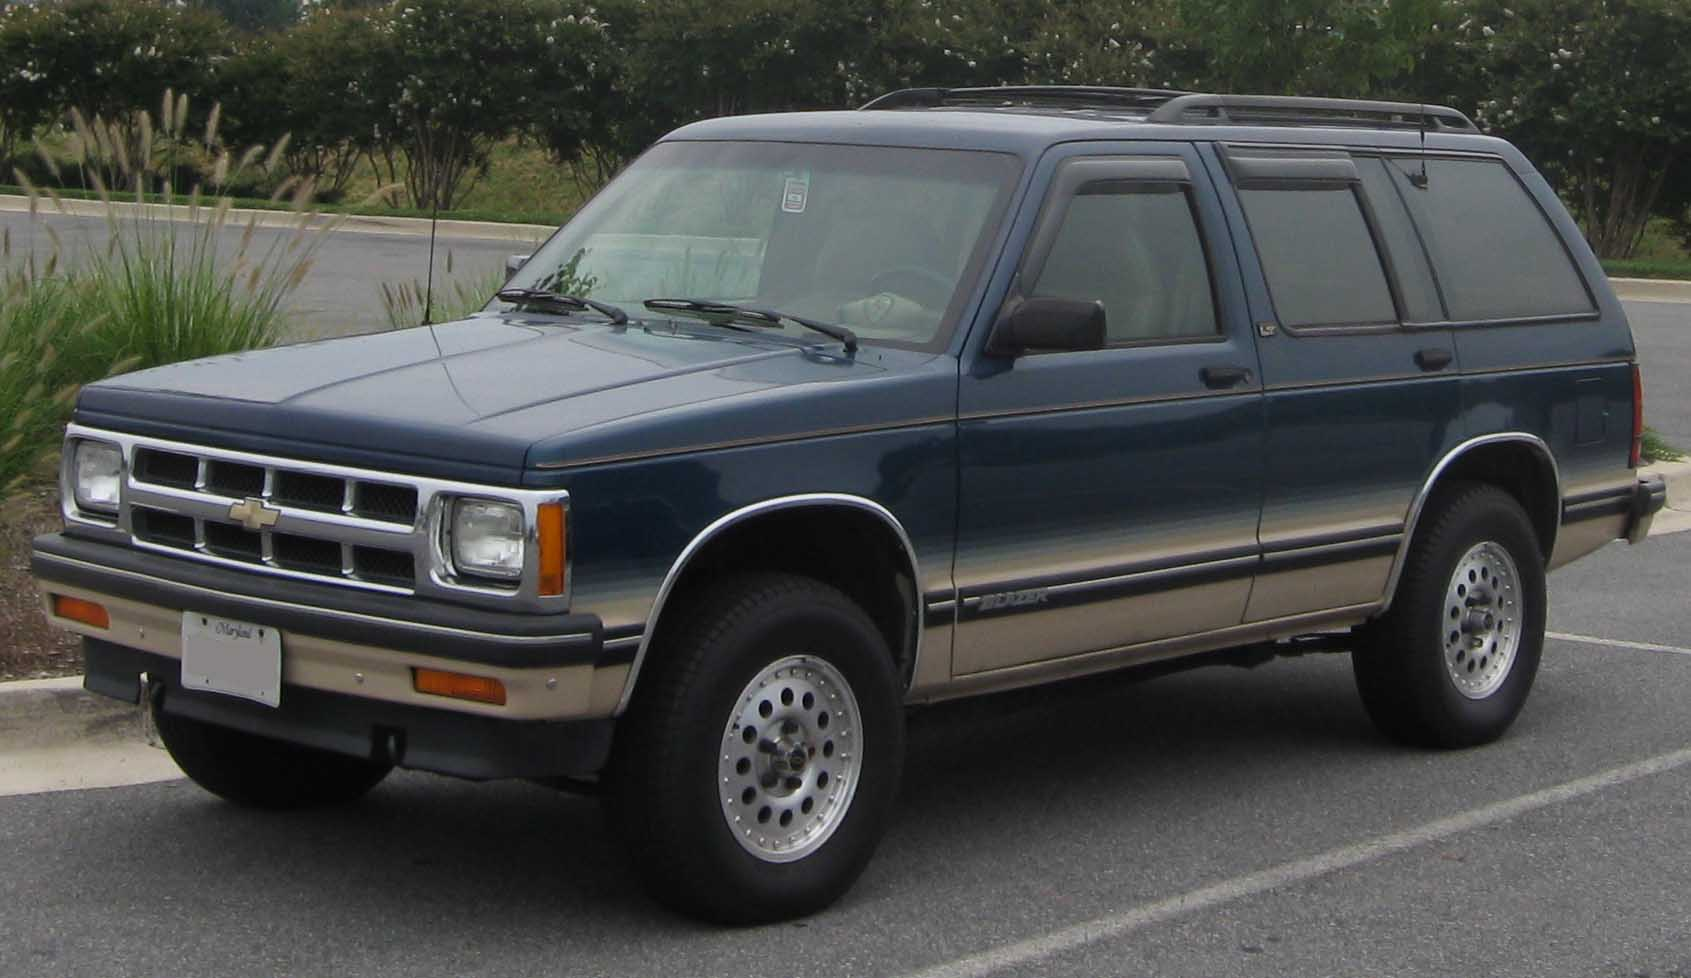 Chevrolet S 10 Blazer on 1990 chevrolet envoy